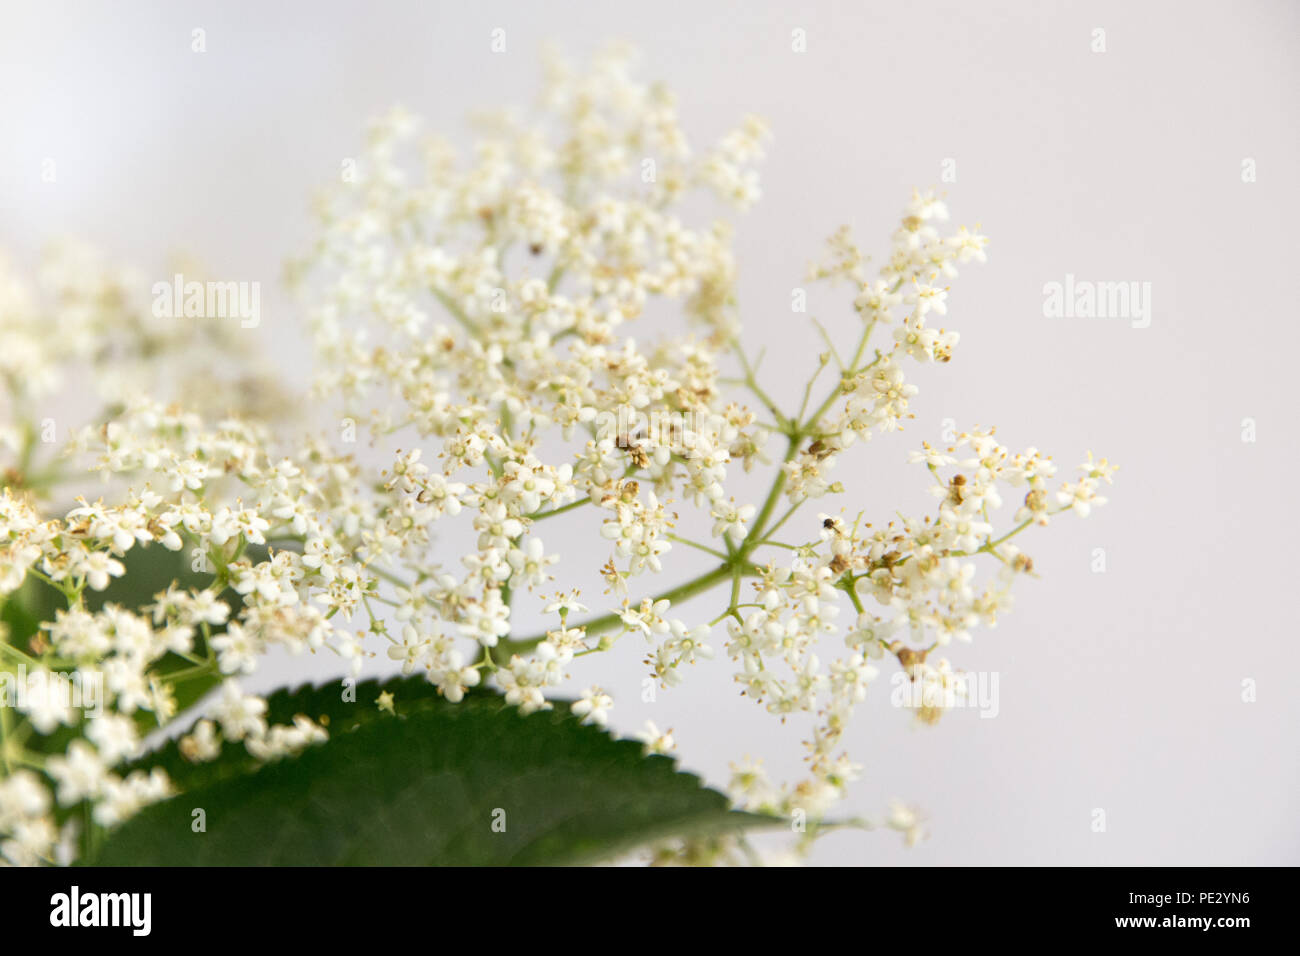 Elderflowers - Stock Image